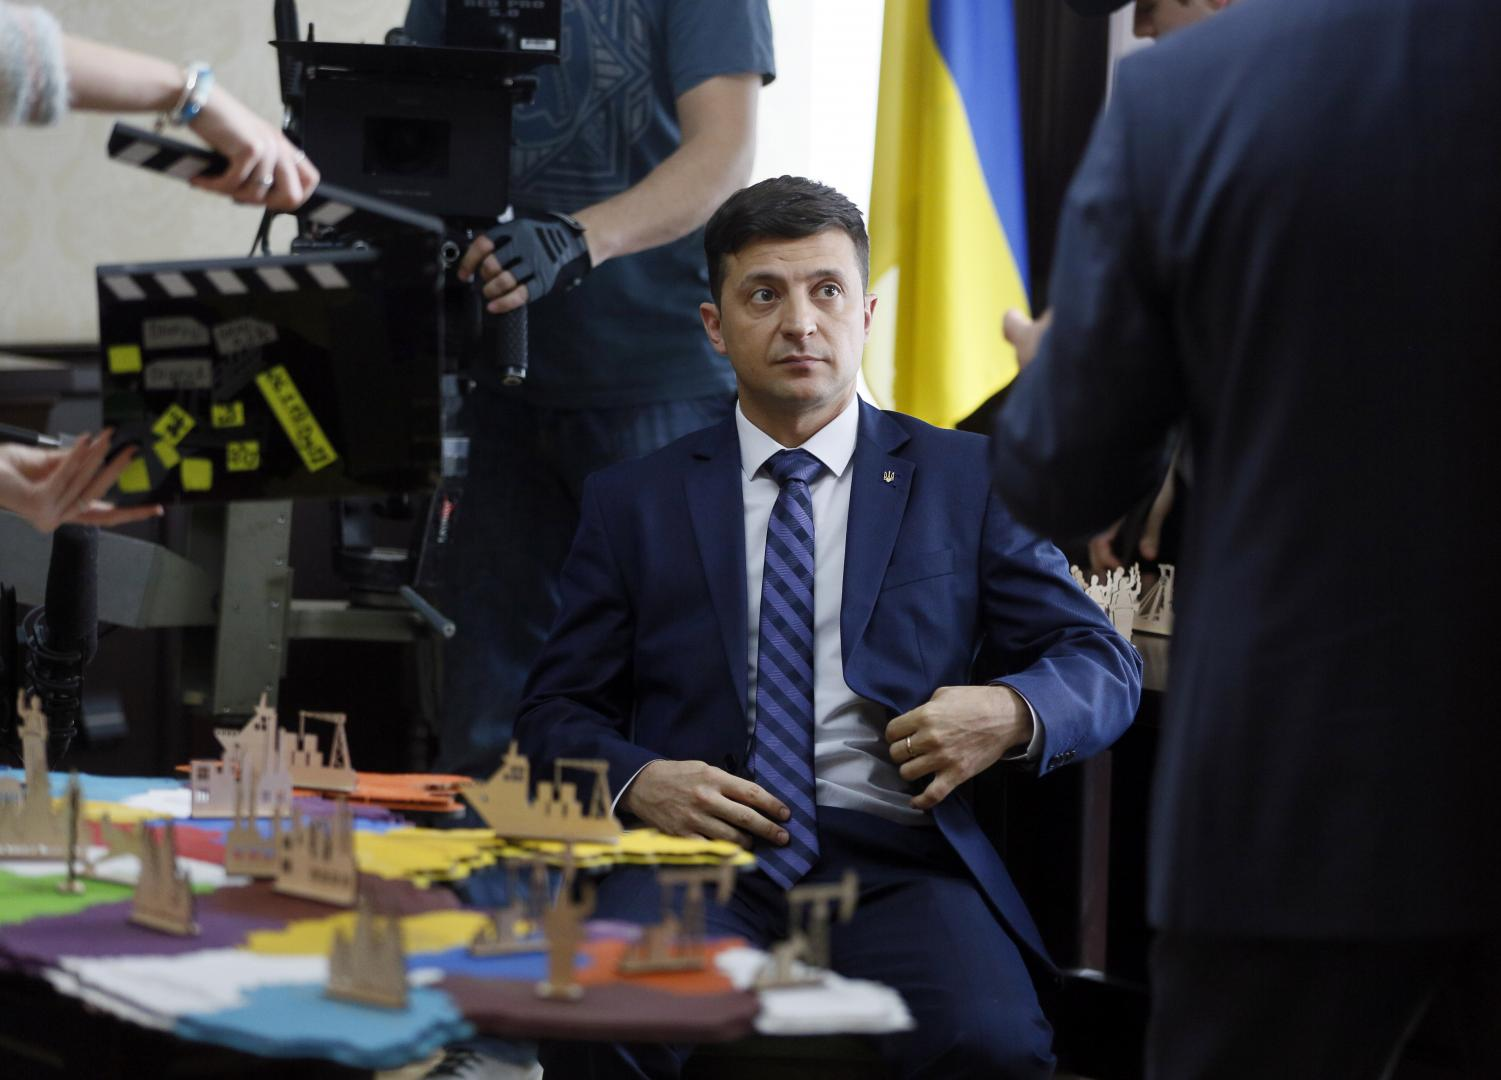 Ukrainian presidential candidate Volodymyr Zelenskiy being photographed on the set of his TV show 'Servant of the People,' where he plays a schoolteacher-turned-president. (EFREM LUKATSKY | ASSOCIATED PRESS)